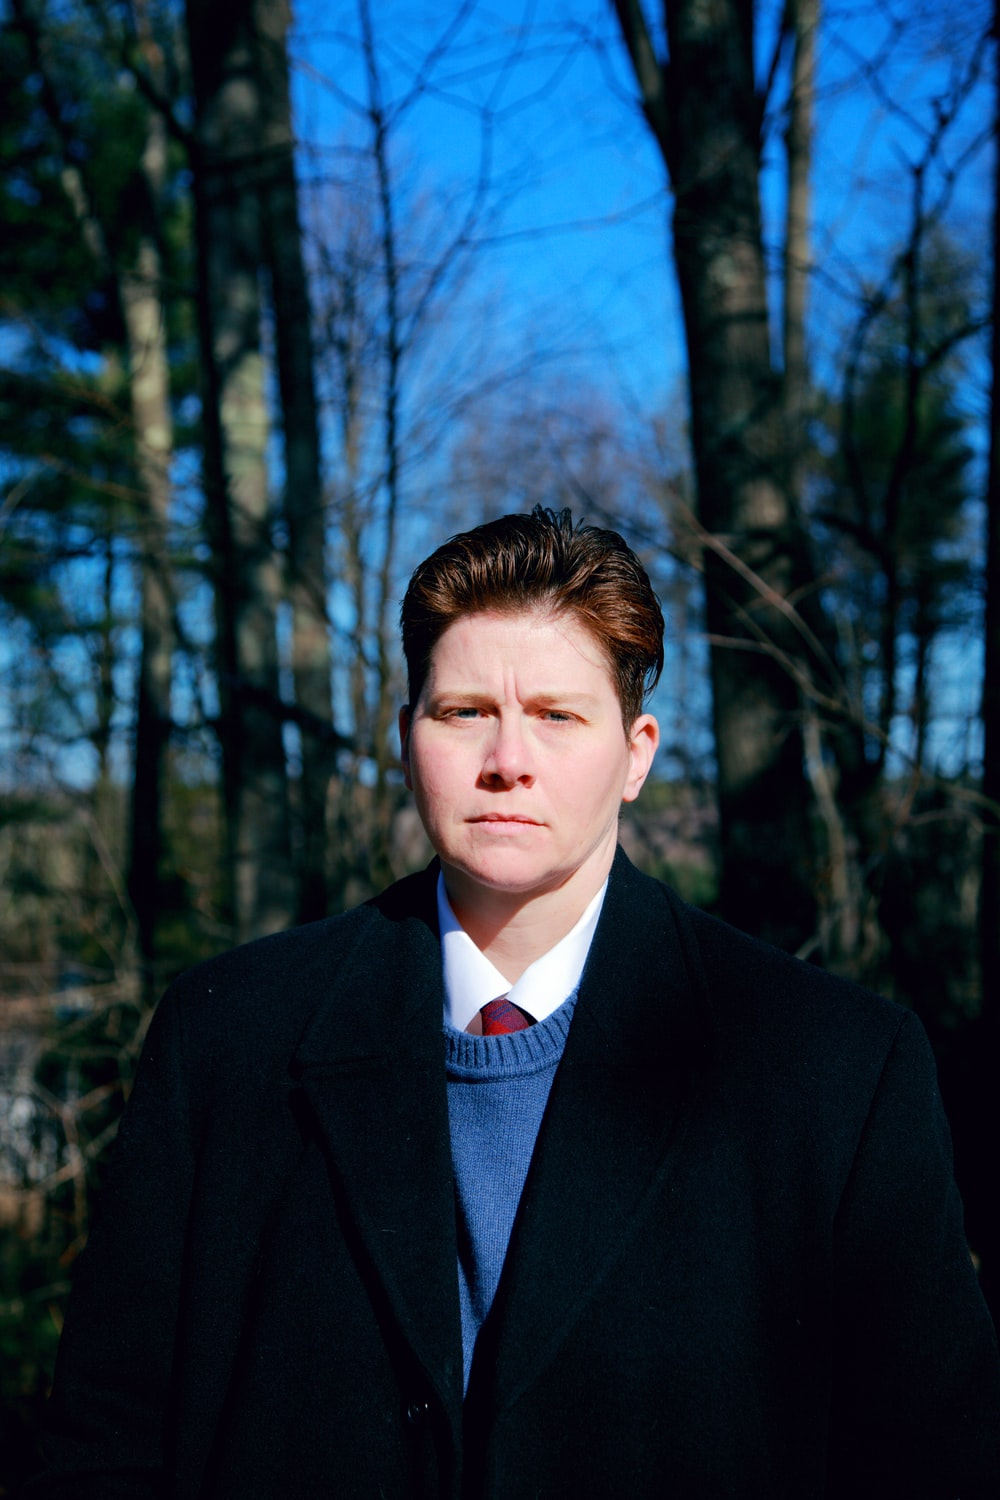 man in black suit jacket standing near trees during daytime